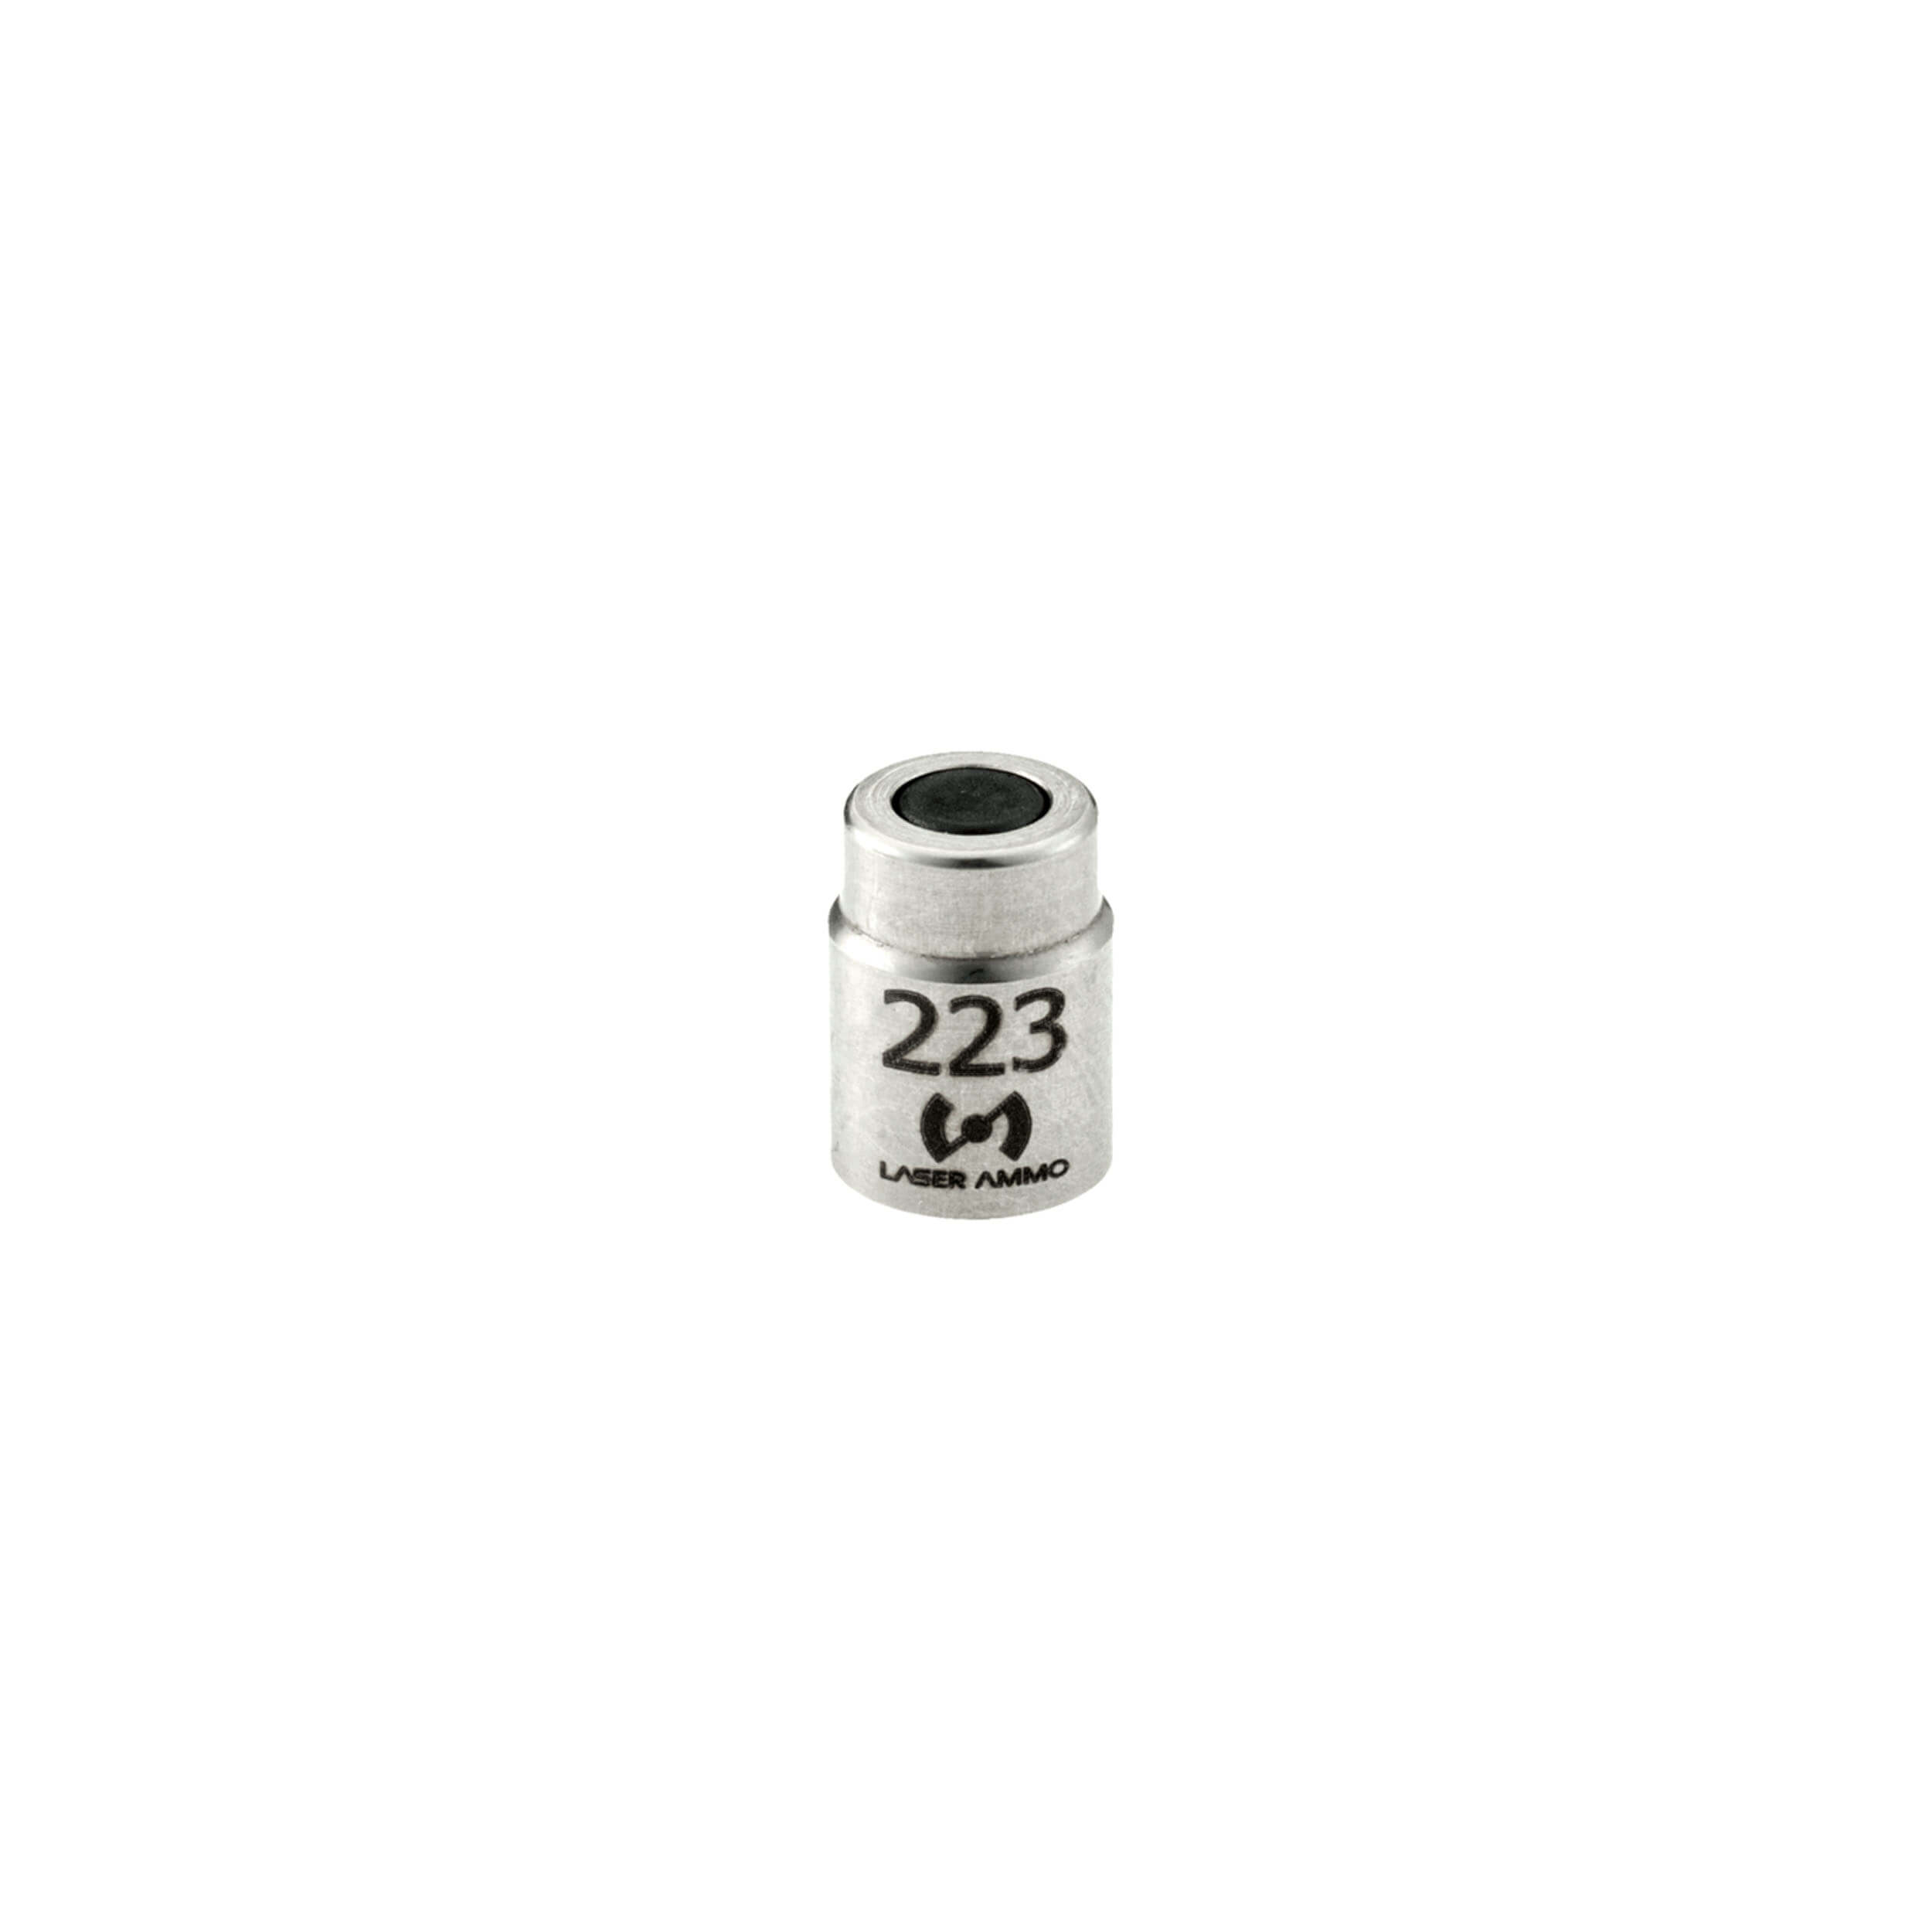 Dry Fire Replacement Back Cap in Caliber .223 for AR15 - 223TA